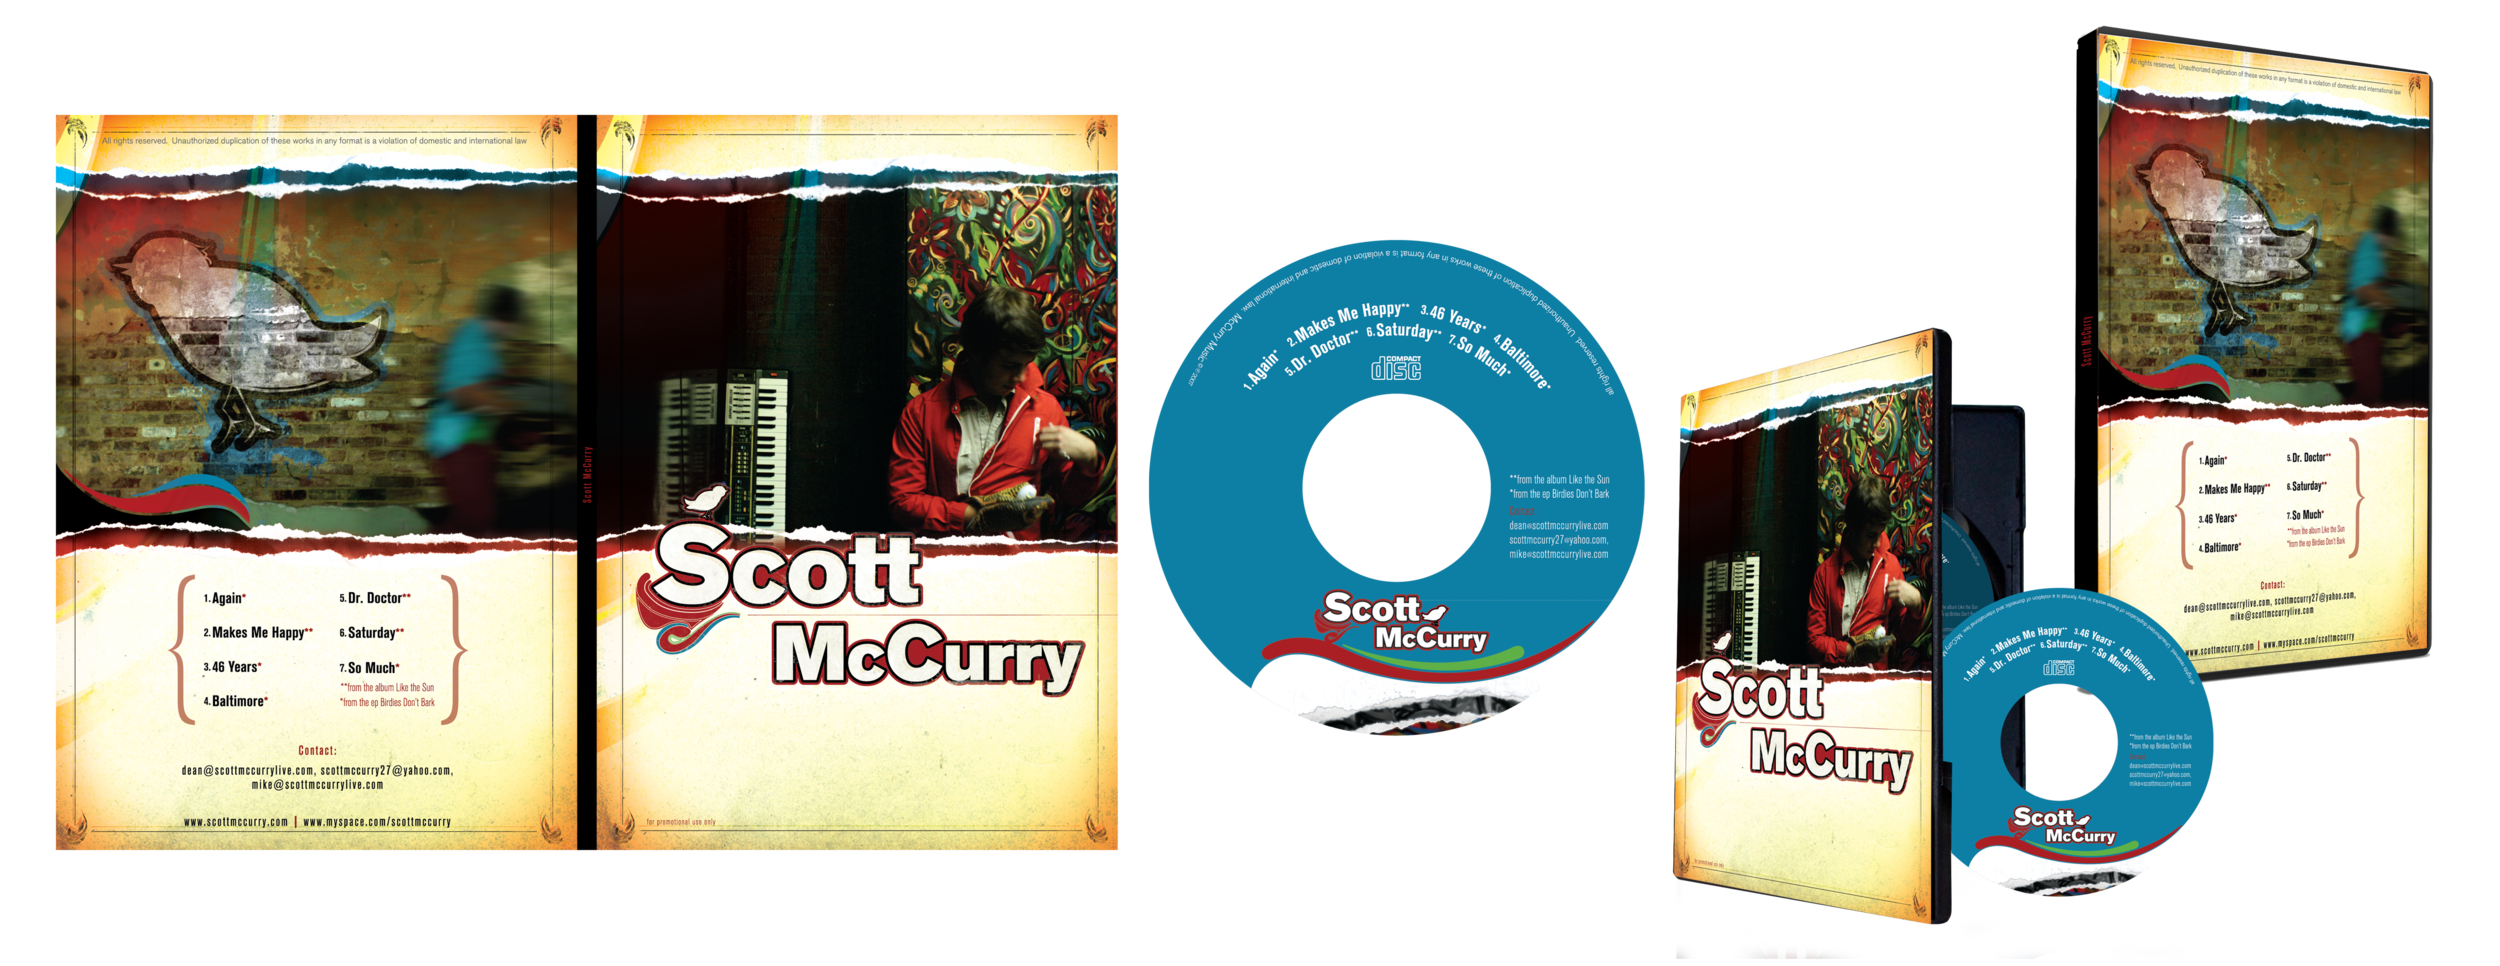 SCOTT MCCURRY BIRDIES DON'T BARK PROMOTIONAL DVD {DESIGN, PHOTOGRAPHY AND ILLUSTRATION}